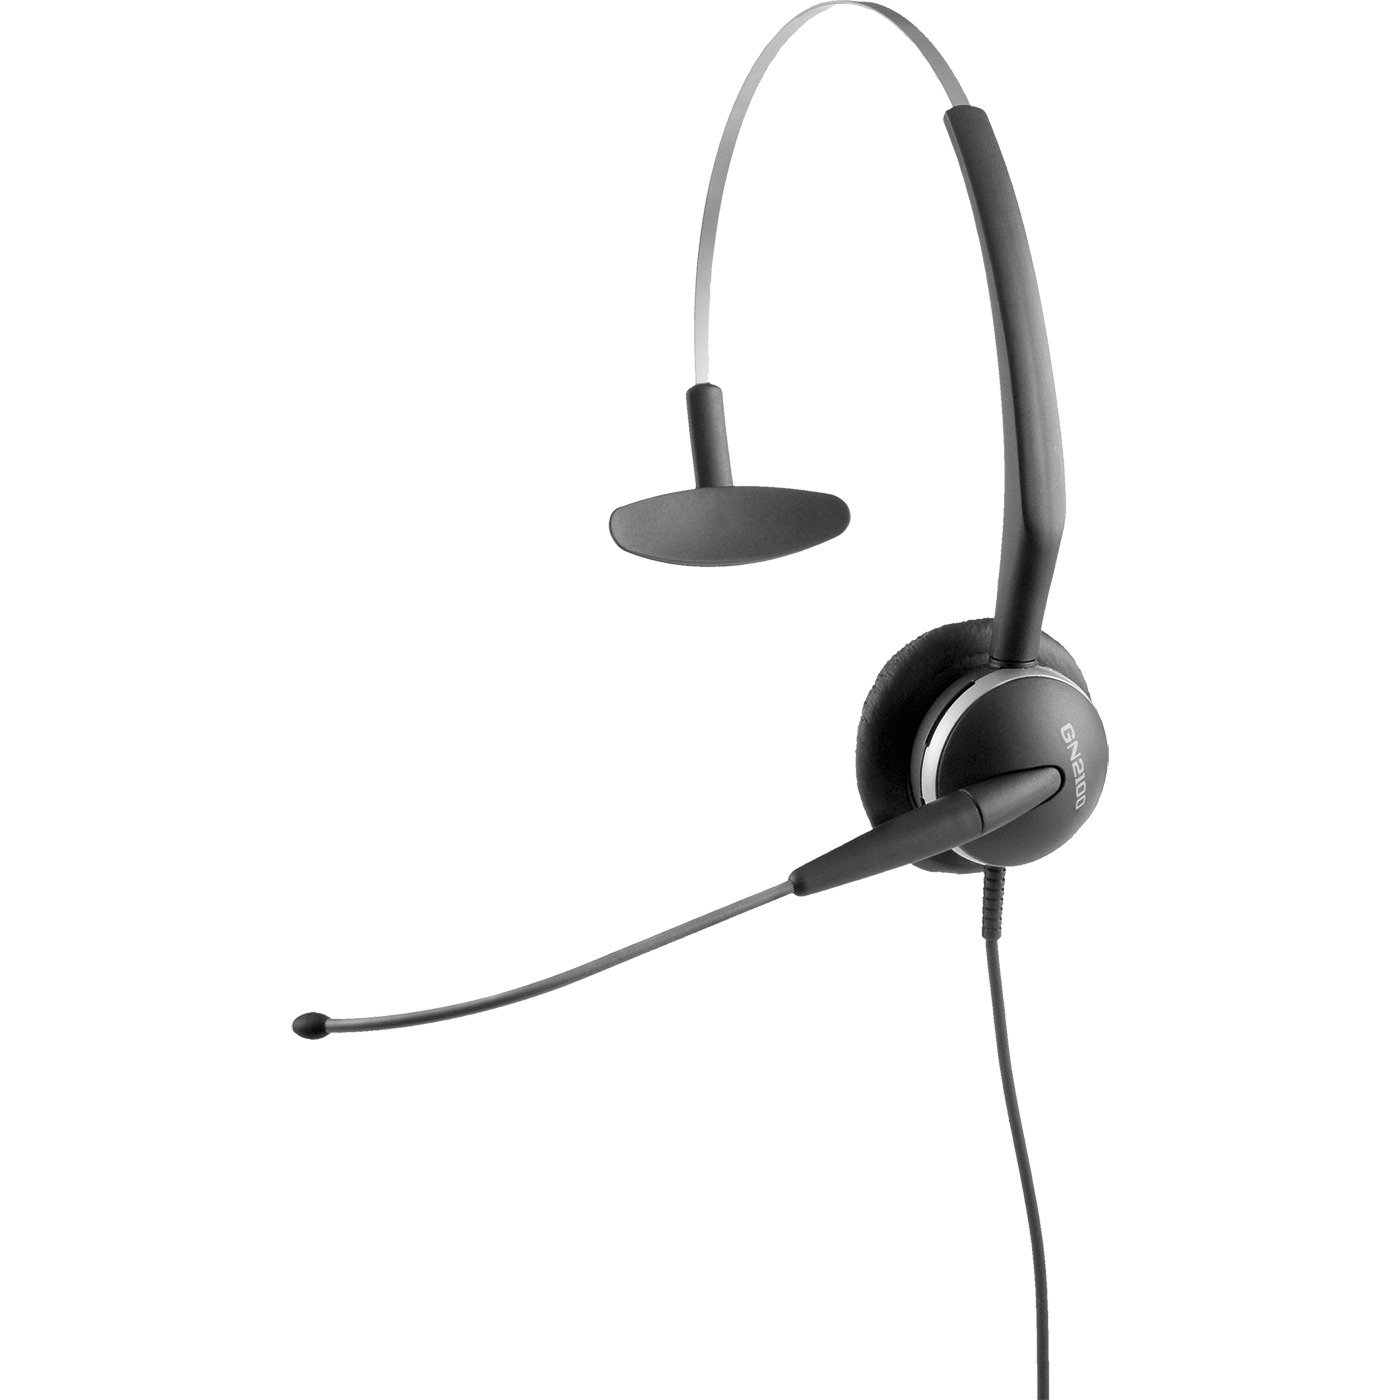 Jabra GN2124 4-in-1 Mono Corded Quick Disconnect Headset with 4-in-1 Wearing Styles for Deskphone